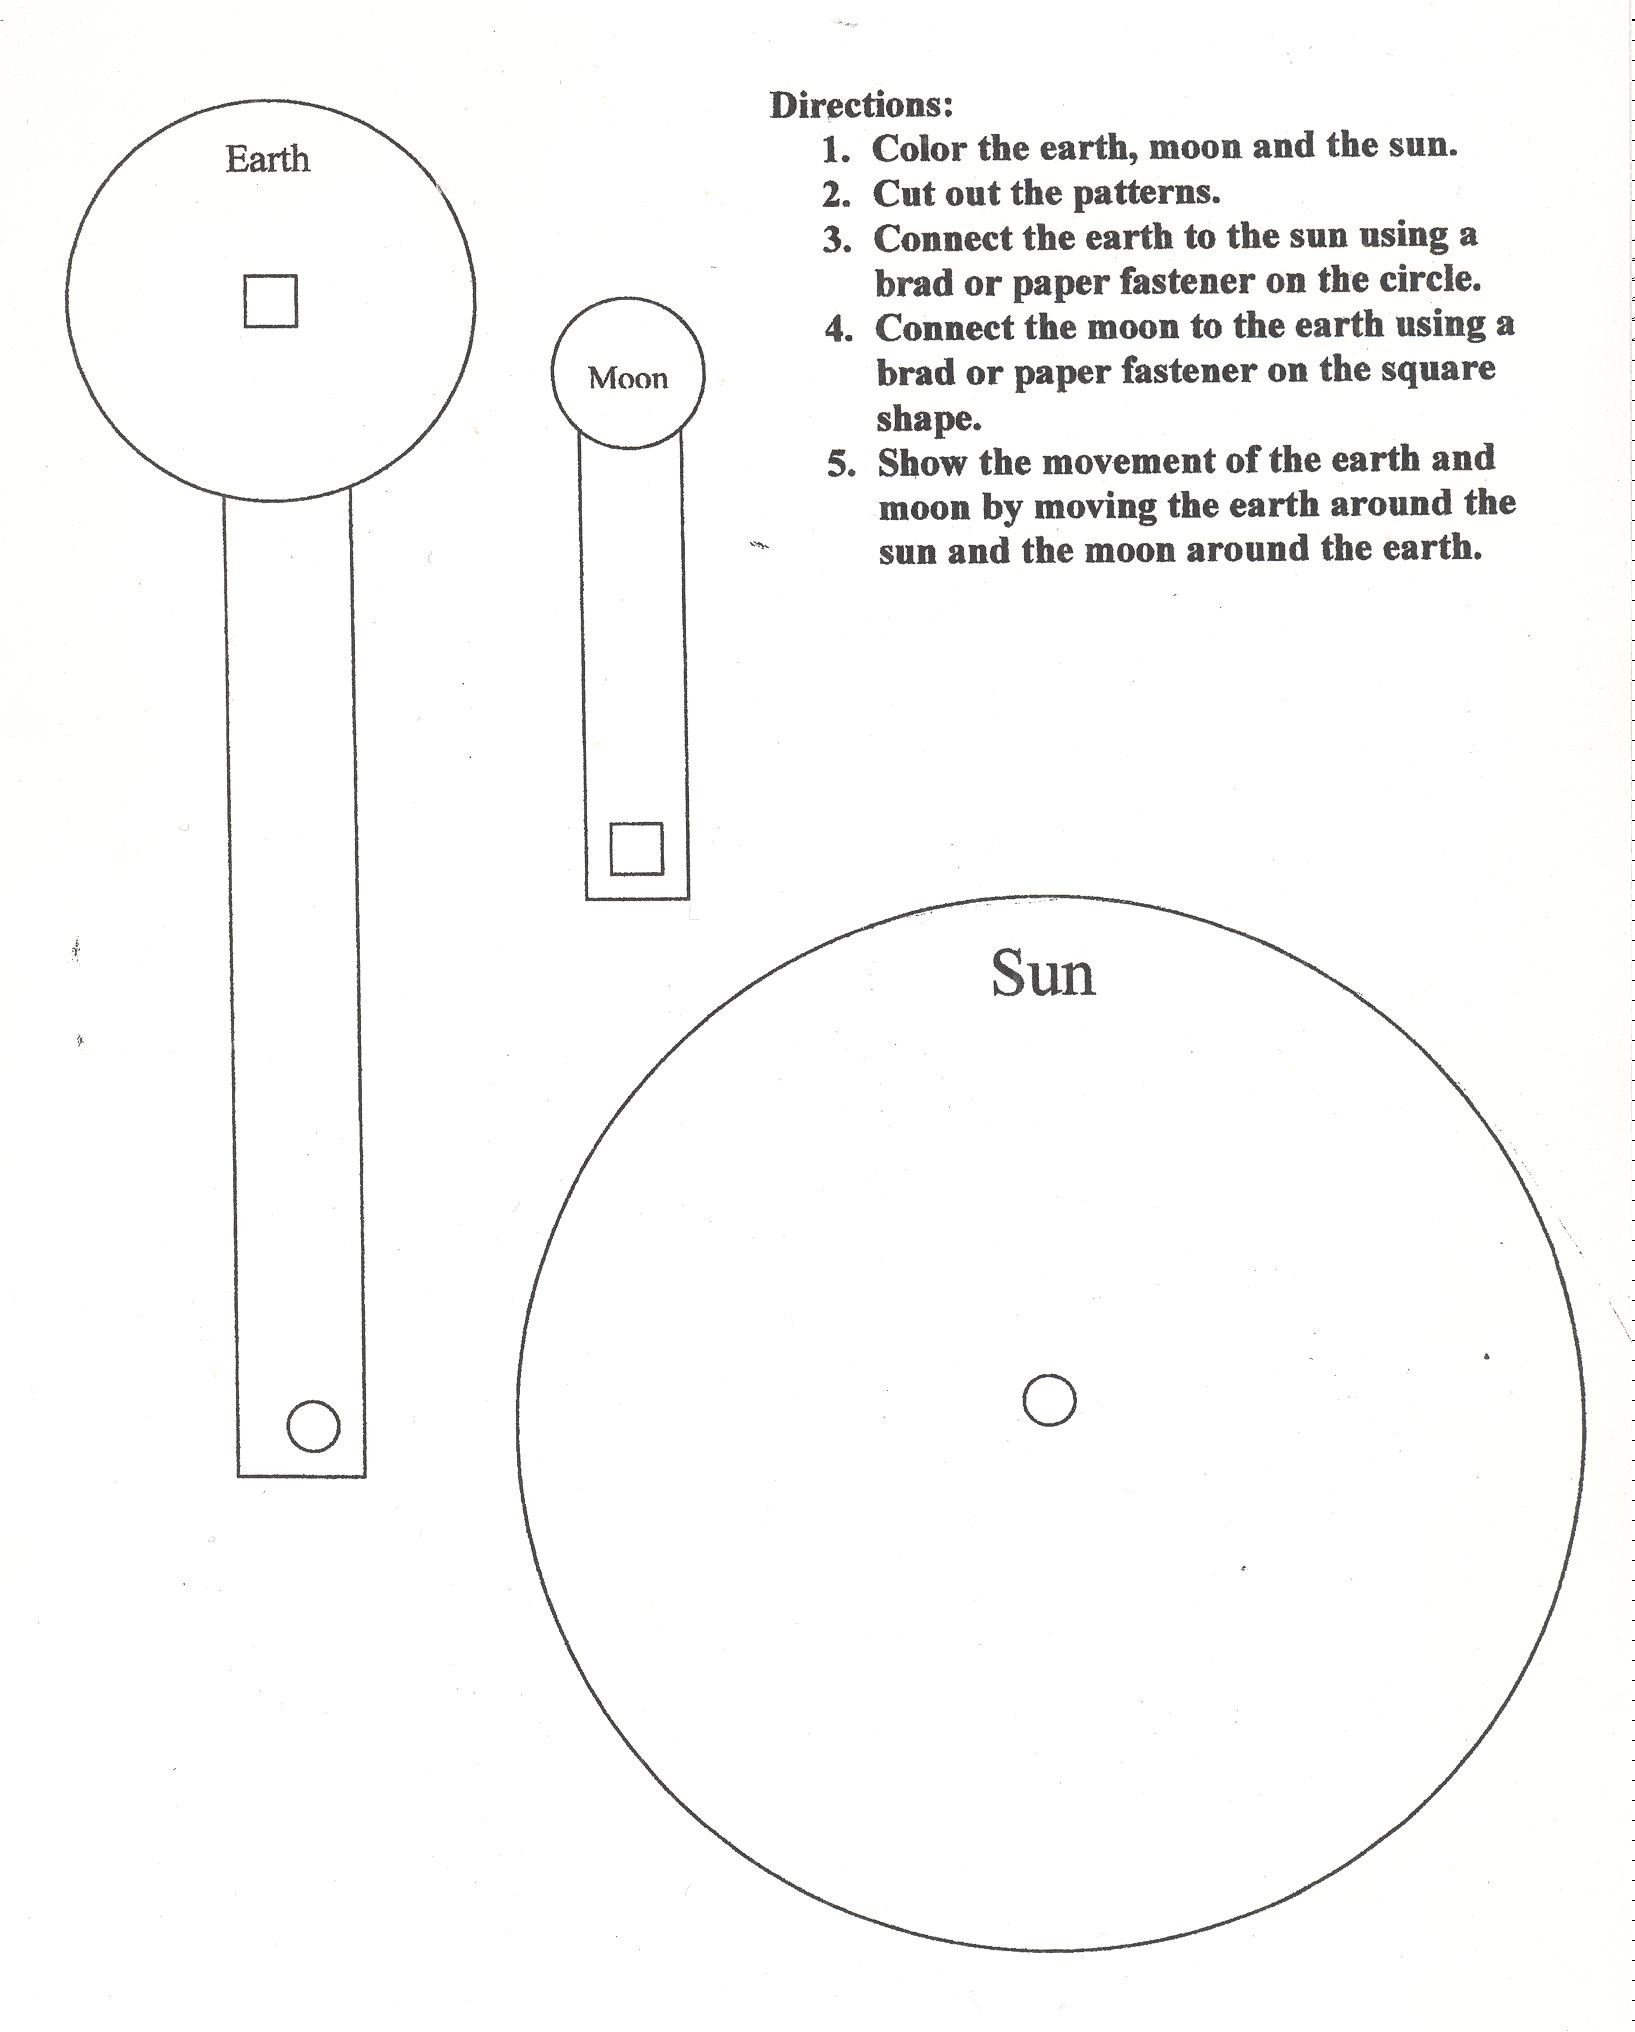 Eclipse Worksheets for Middle School Challenge Students&apos Creativity Using the Sun Earth Moon